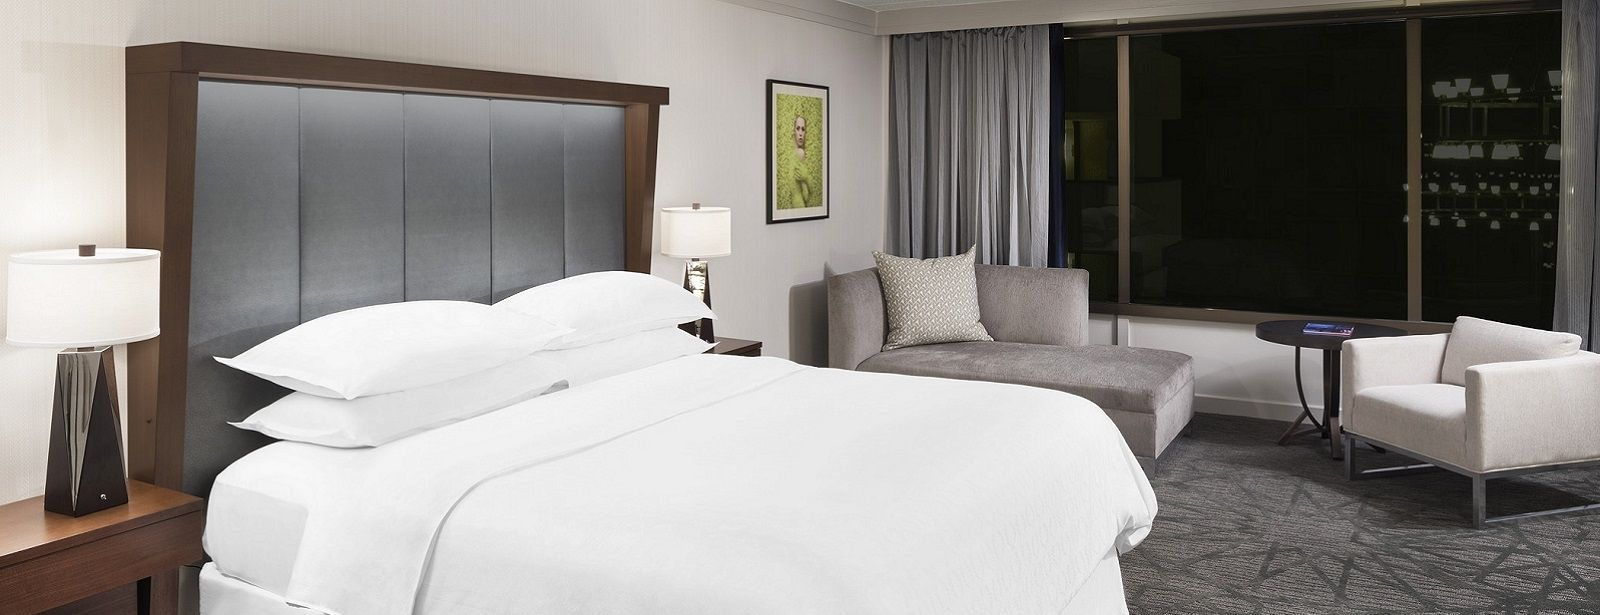 Sheraton Bloomington Hotel Accommodations | Club Suite